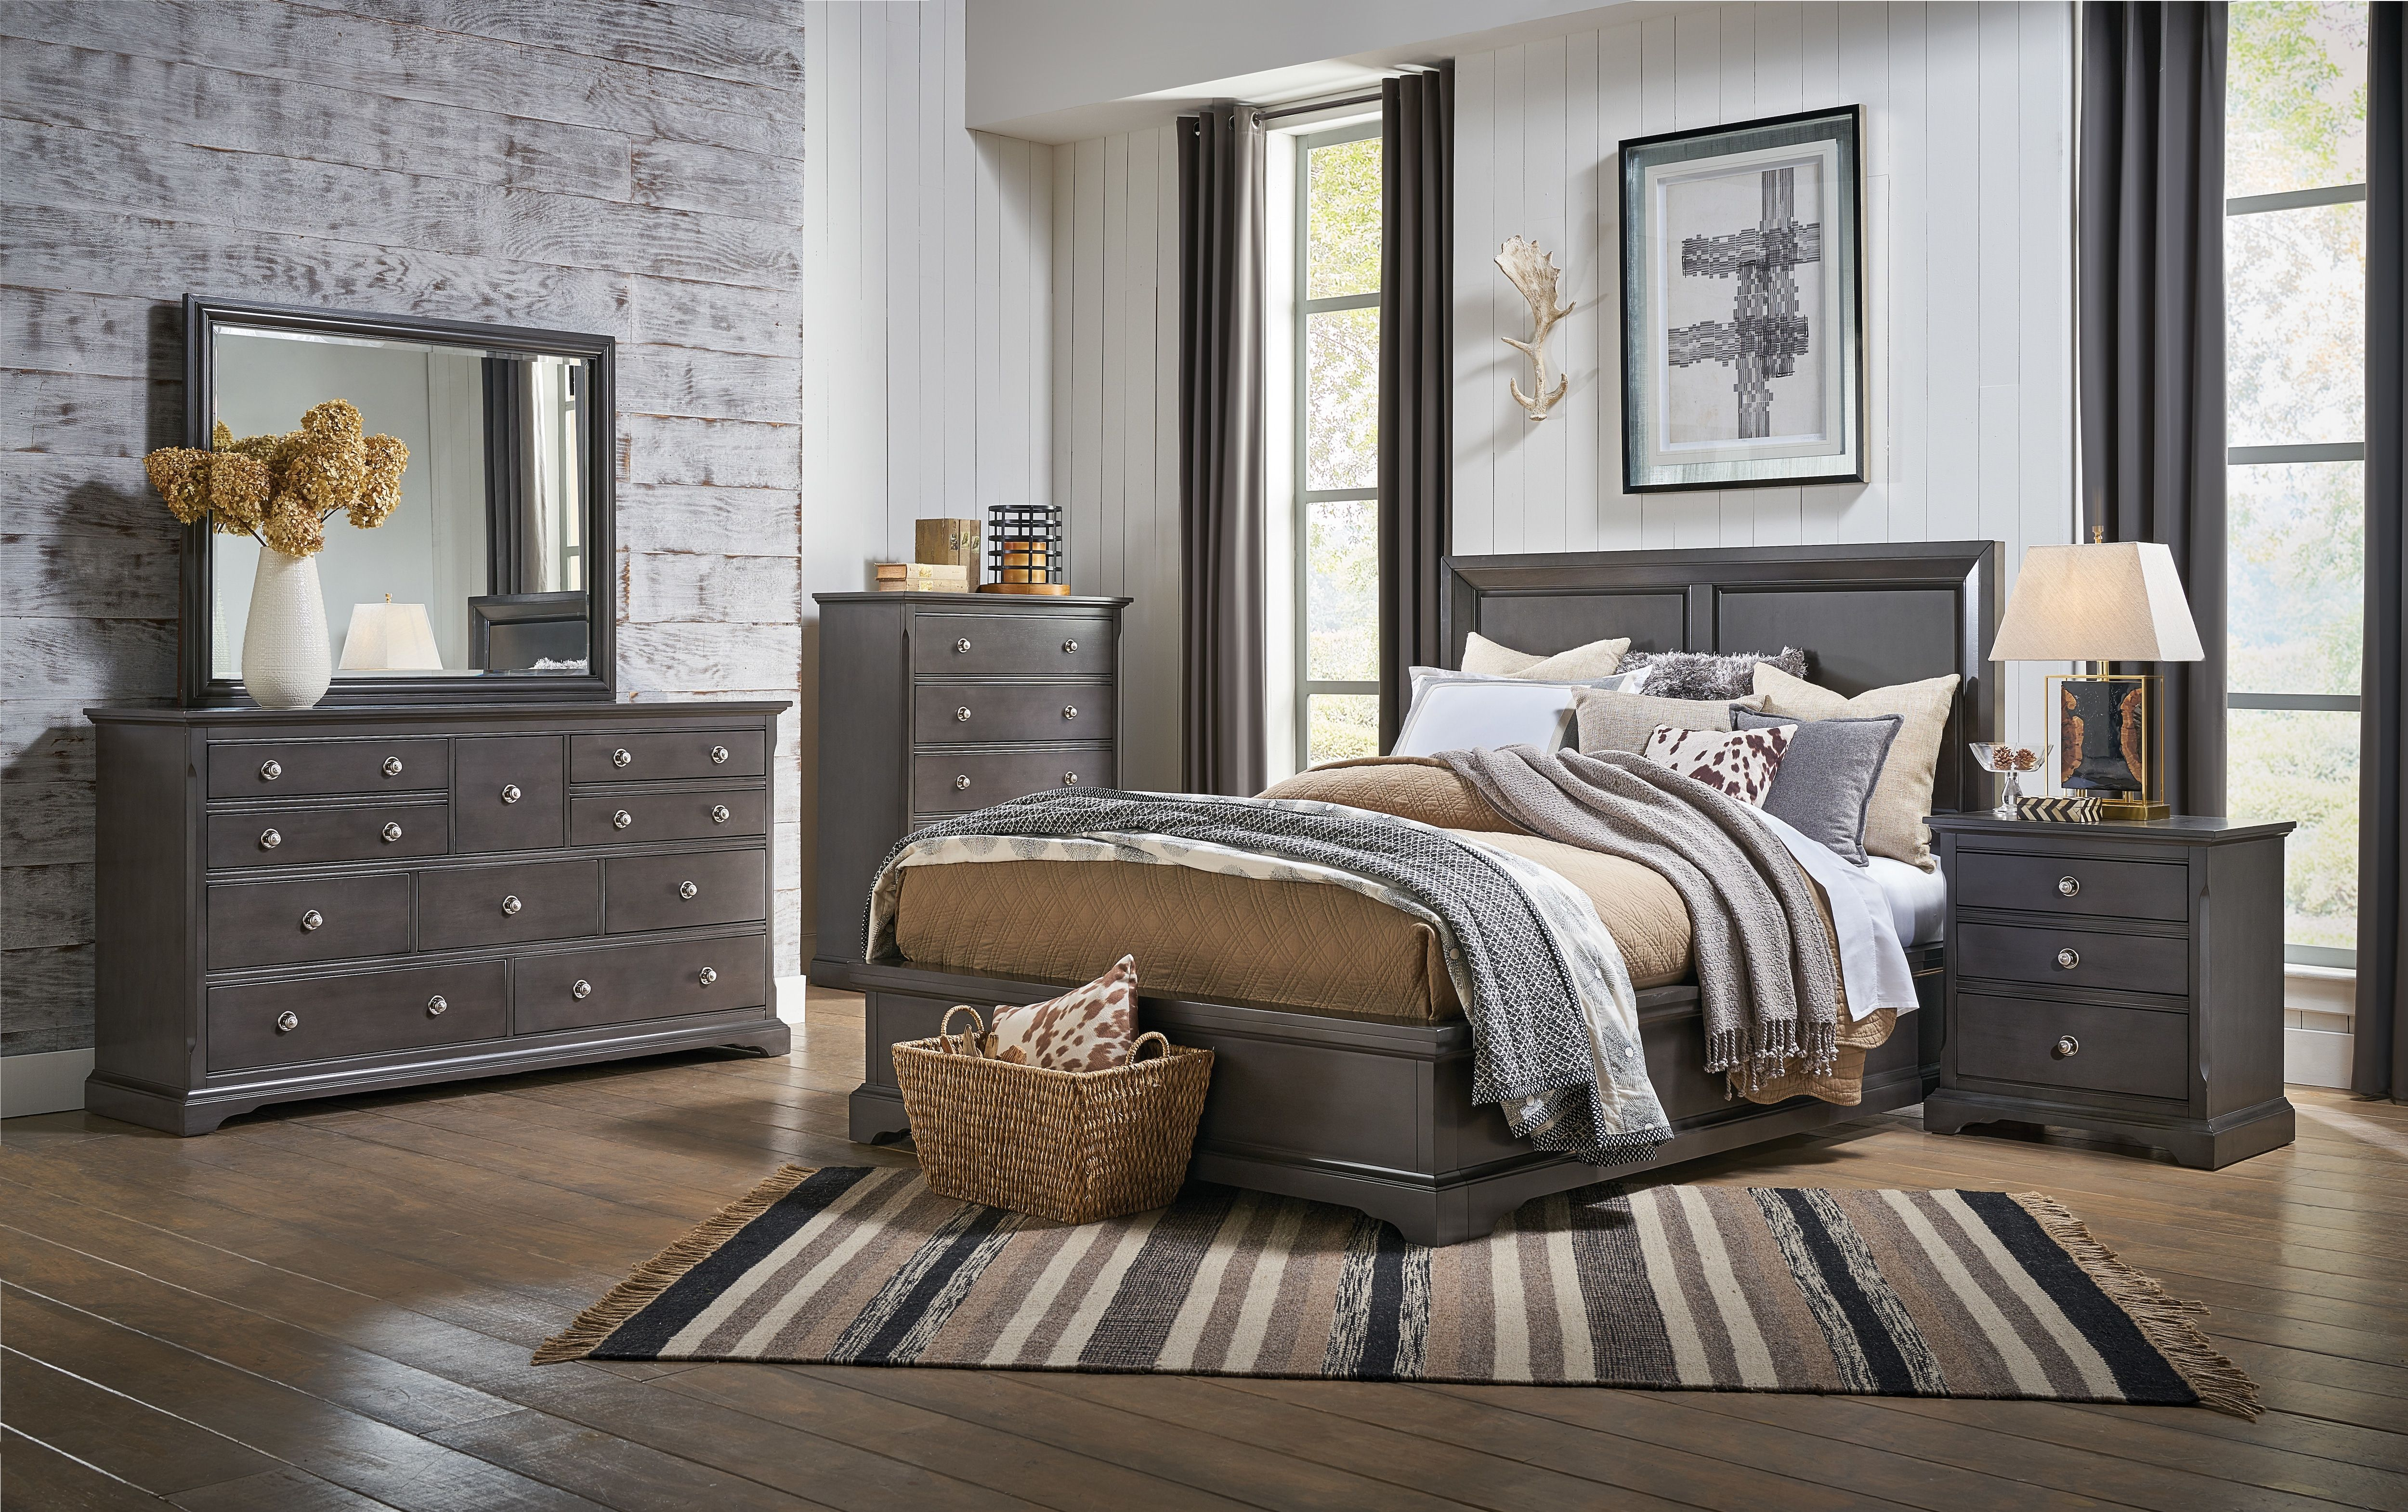 The Georgetown Bedroom Collection Is Finished In A Dark Grey For A Traditional Feel Clean Lines King Bedroom Sets Bedroom Sets Queen Master Bedroom Furniture